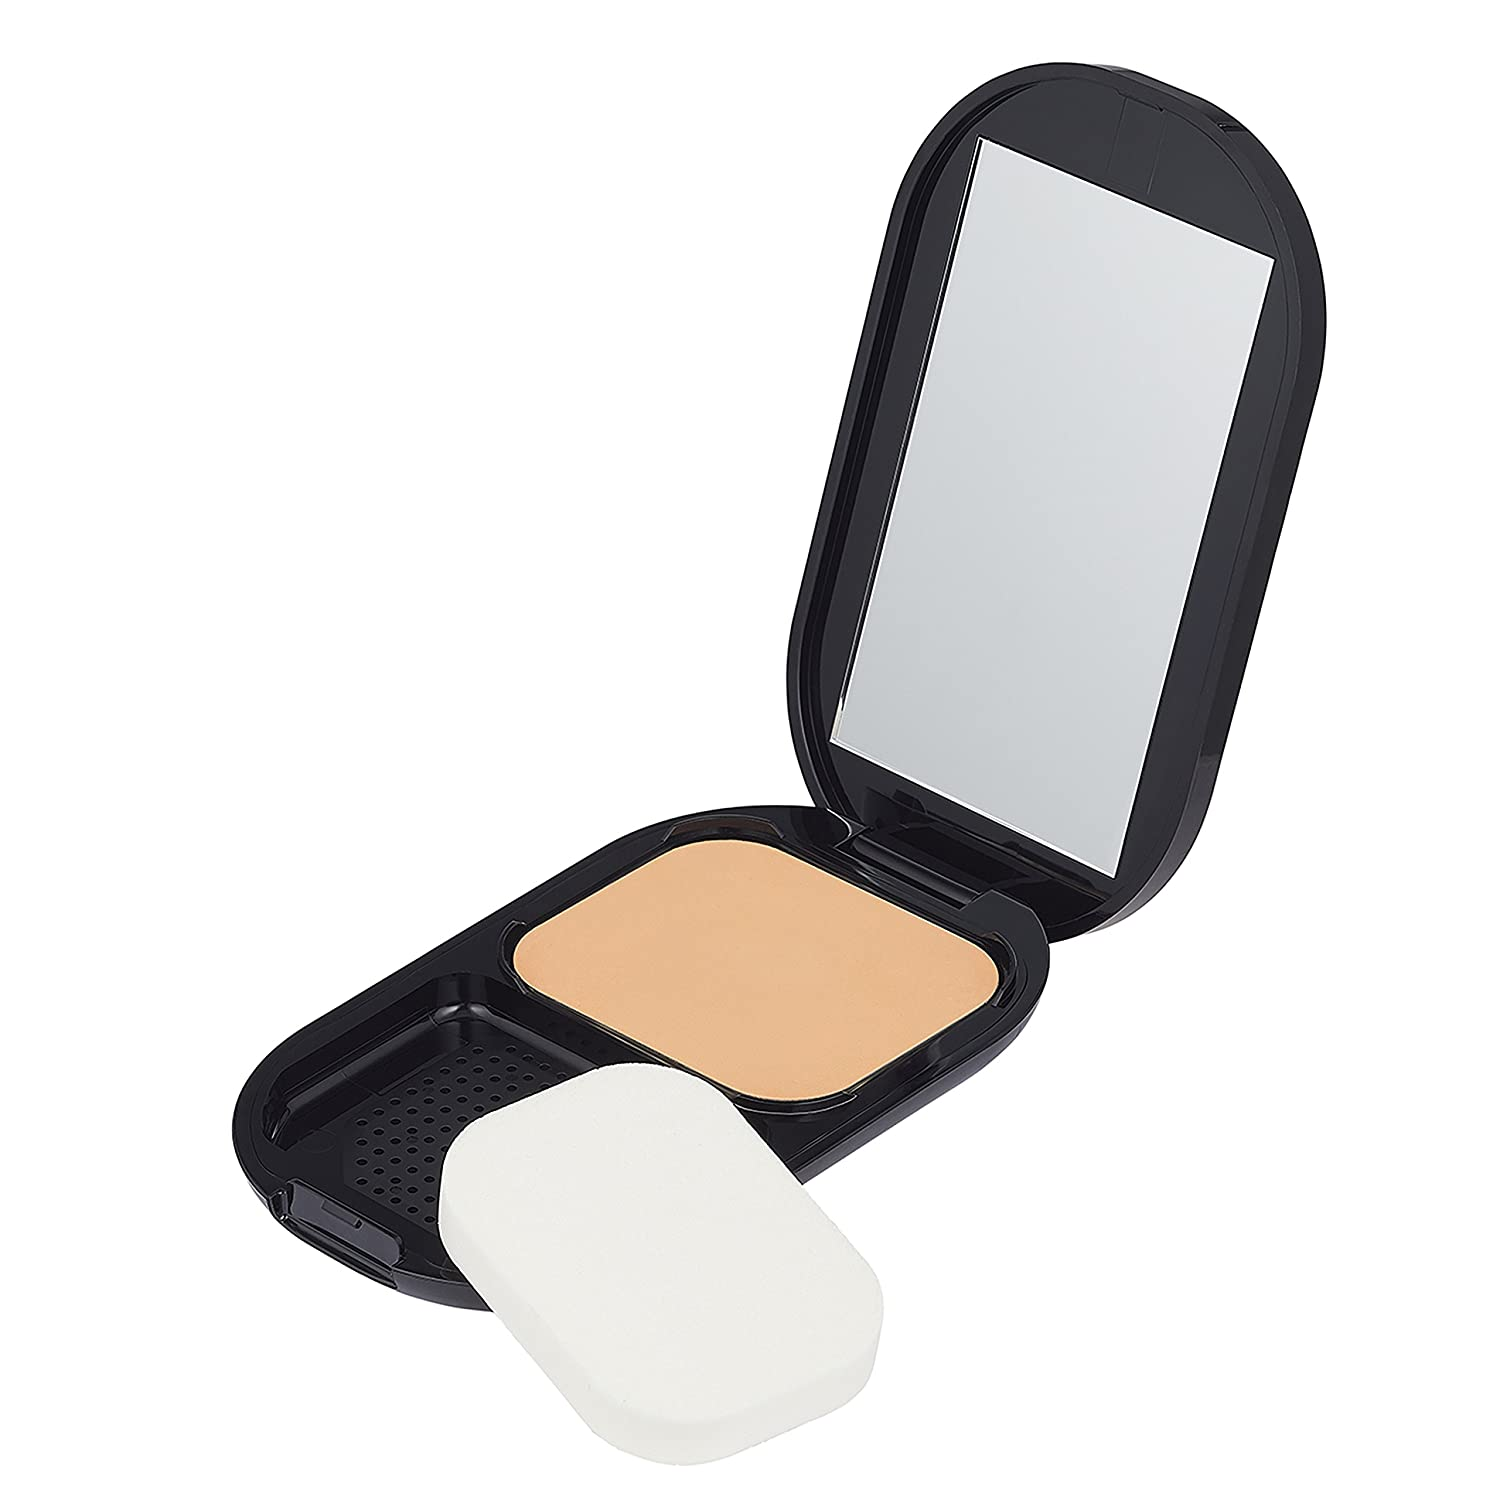 Max Factor Facefinity Compact Foundation, numero 003, naturale, 10g, SPF 20 Coty 81639775